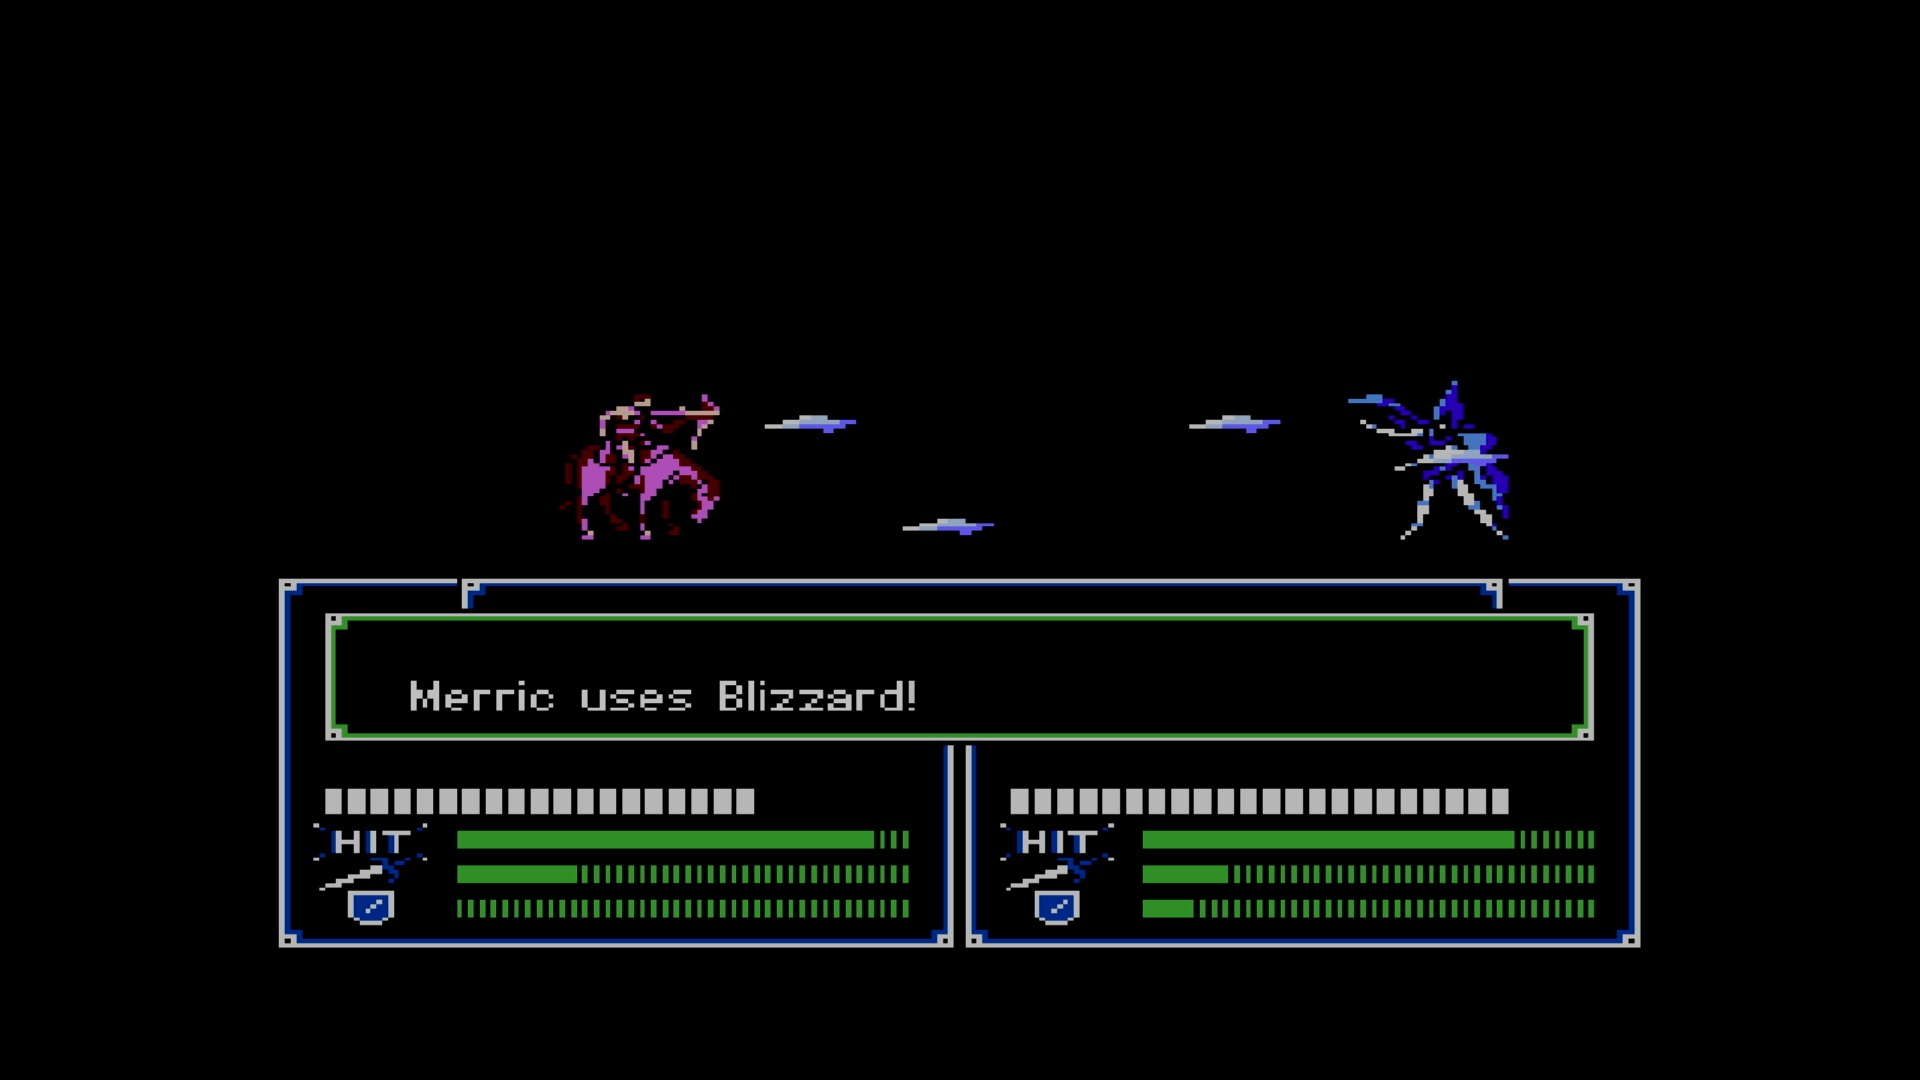 FESw_SCRN_PR_Battle_MerricBlizzard